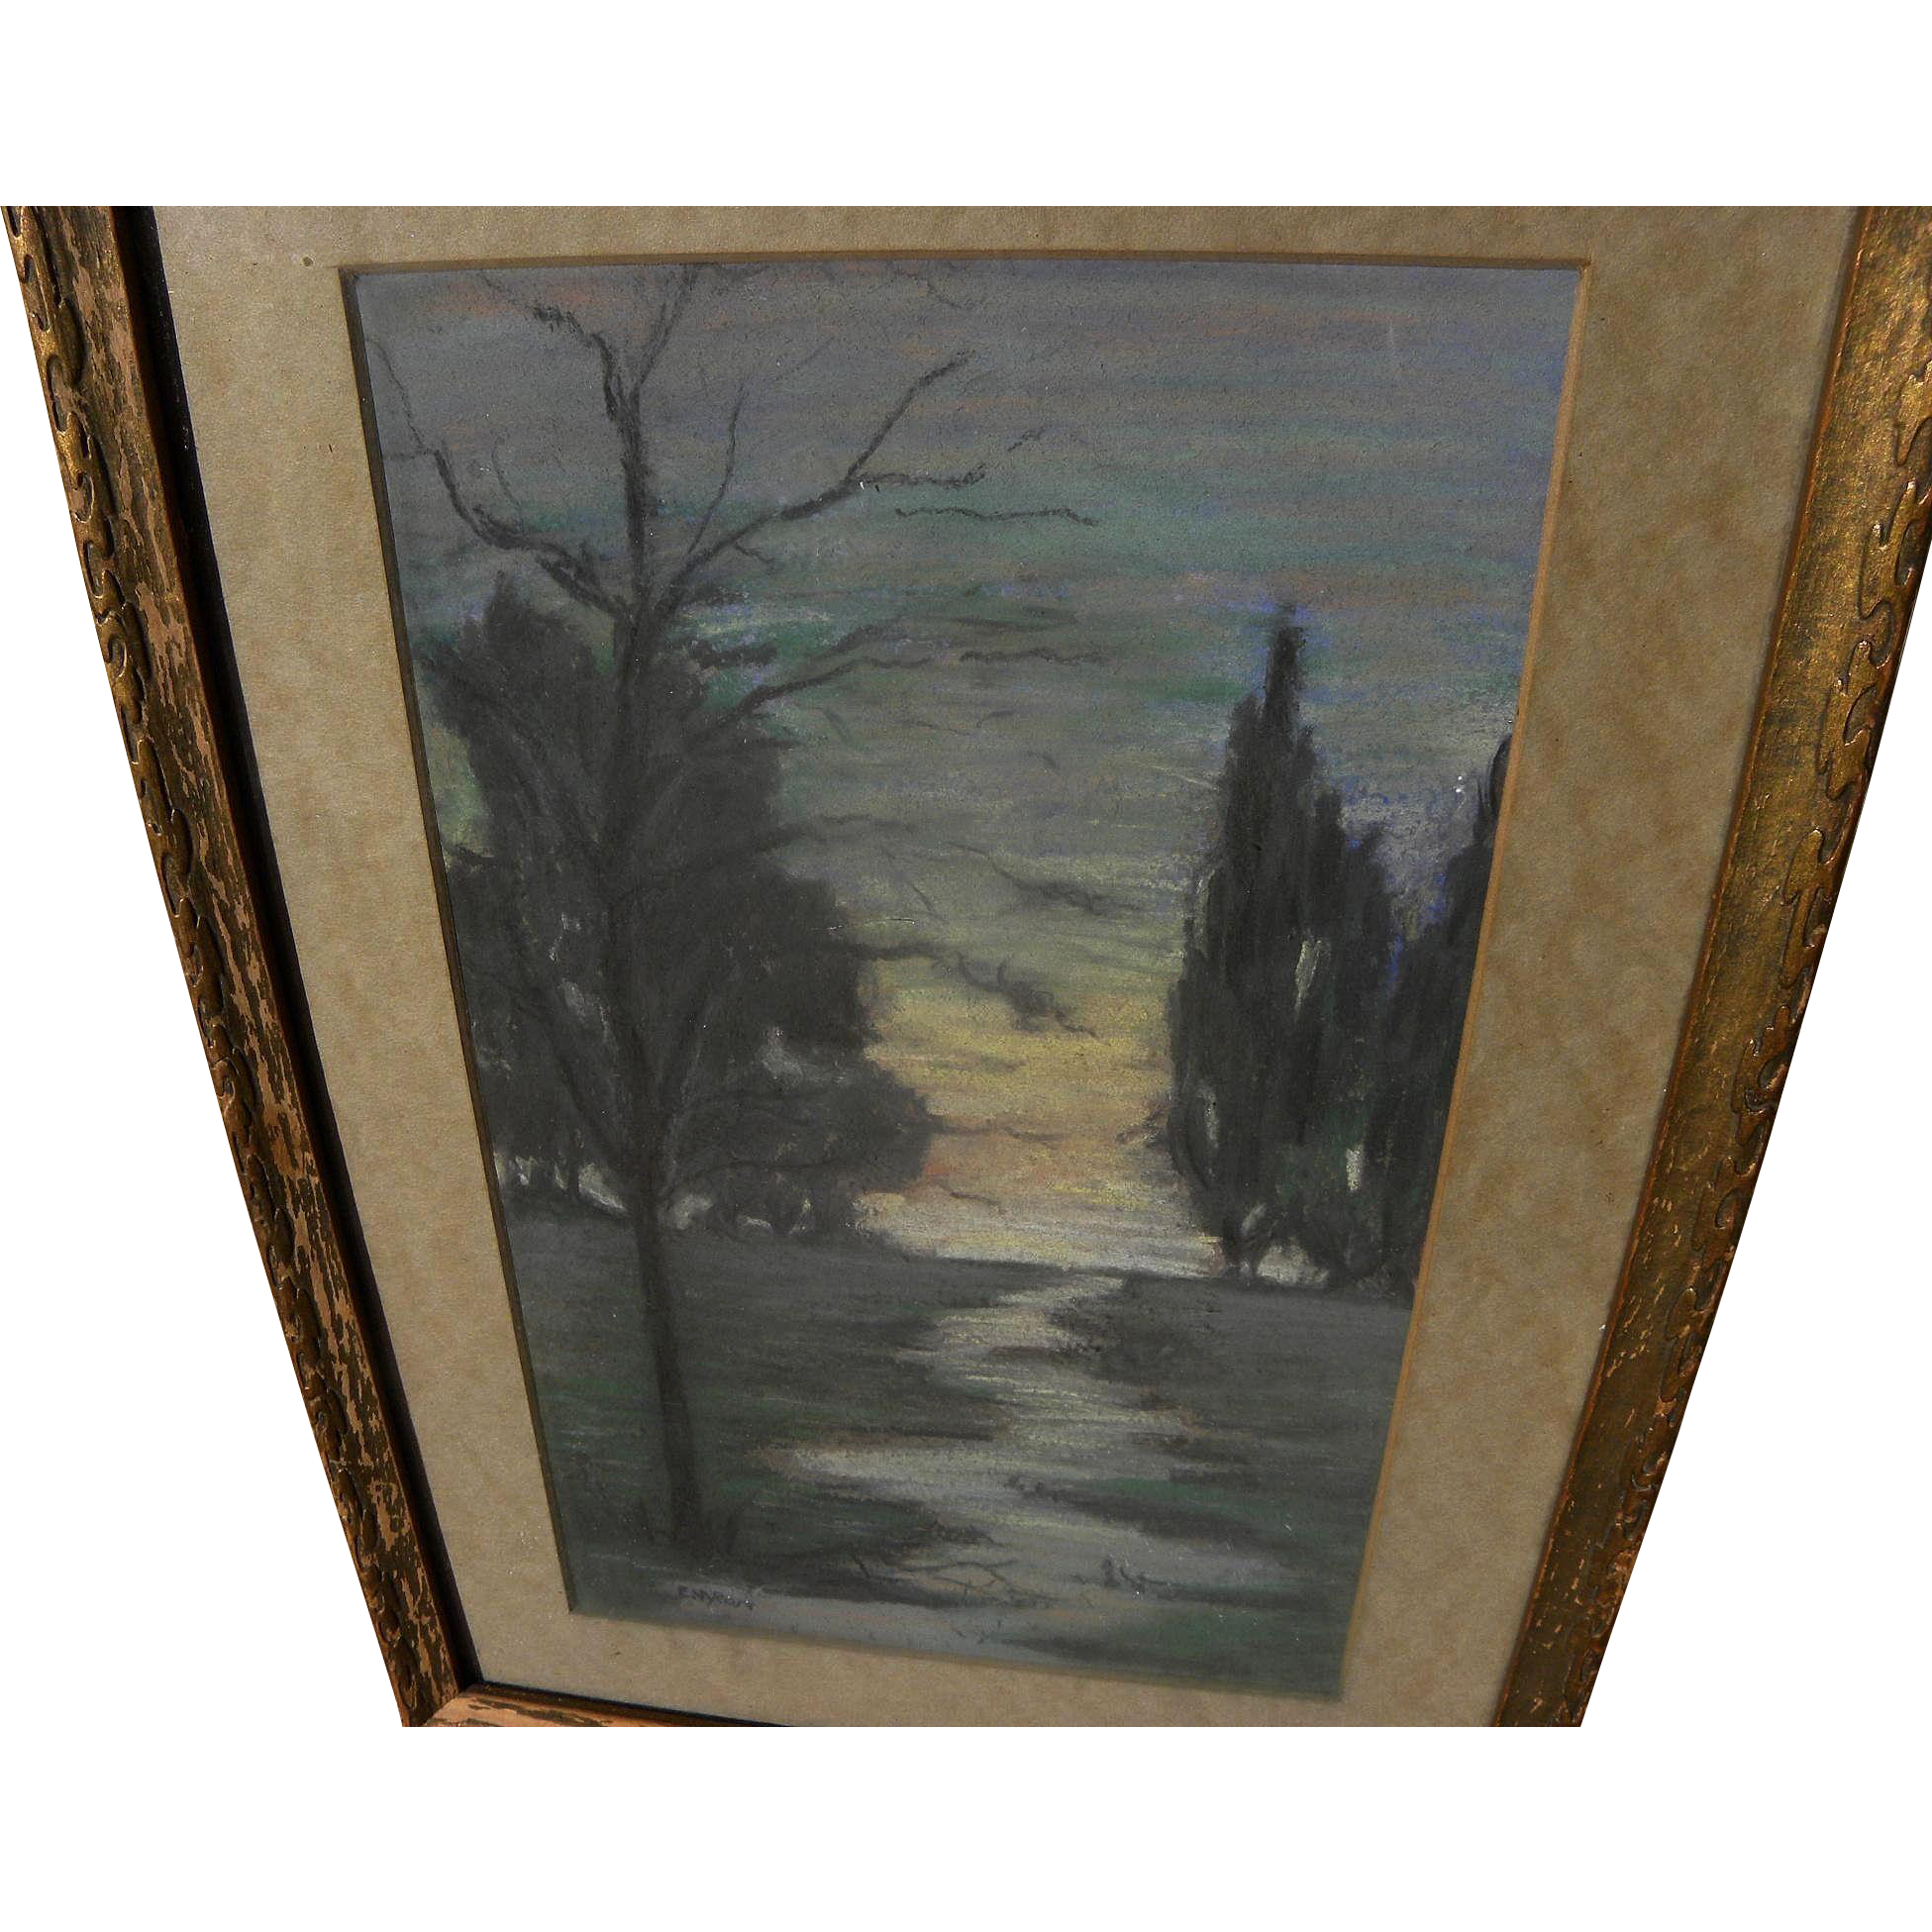 Vintage American signed pastel drawing of a path among trees at sunset